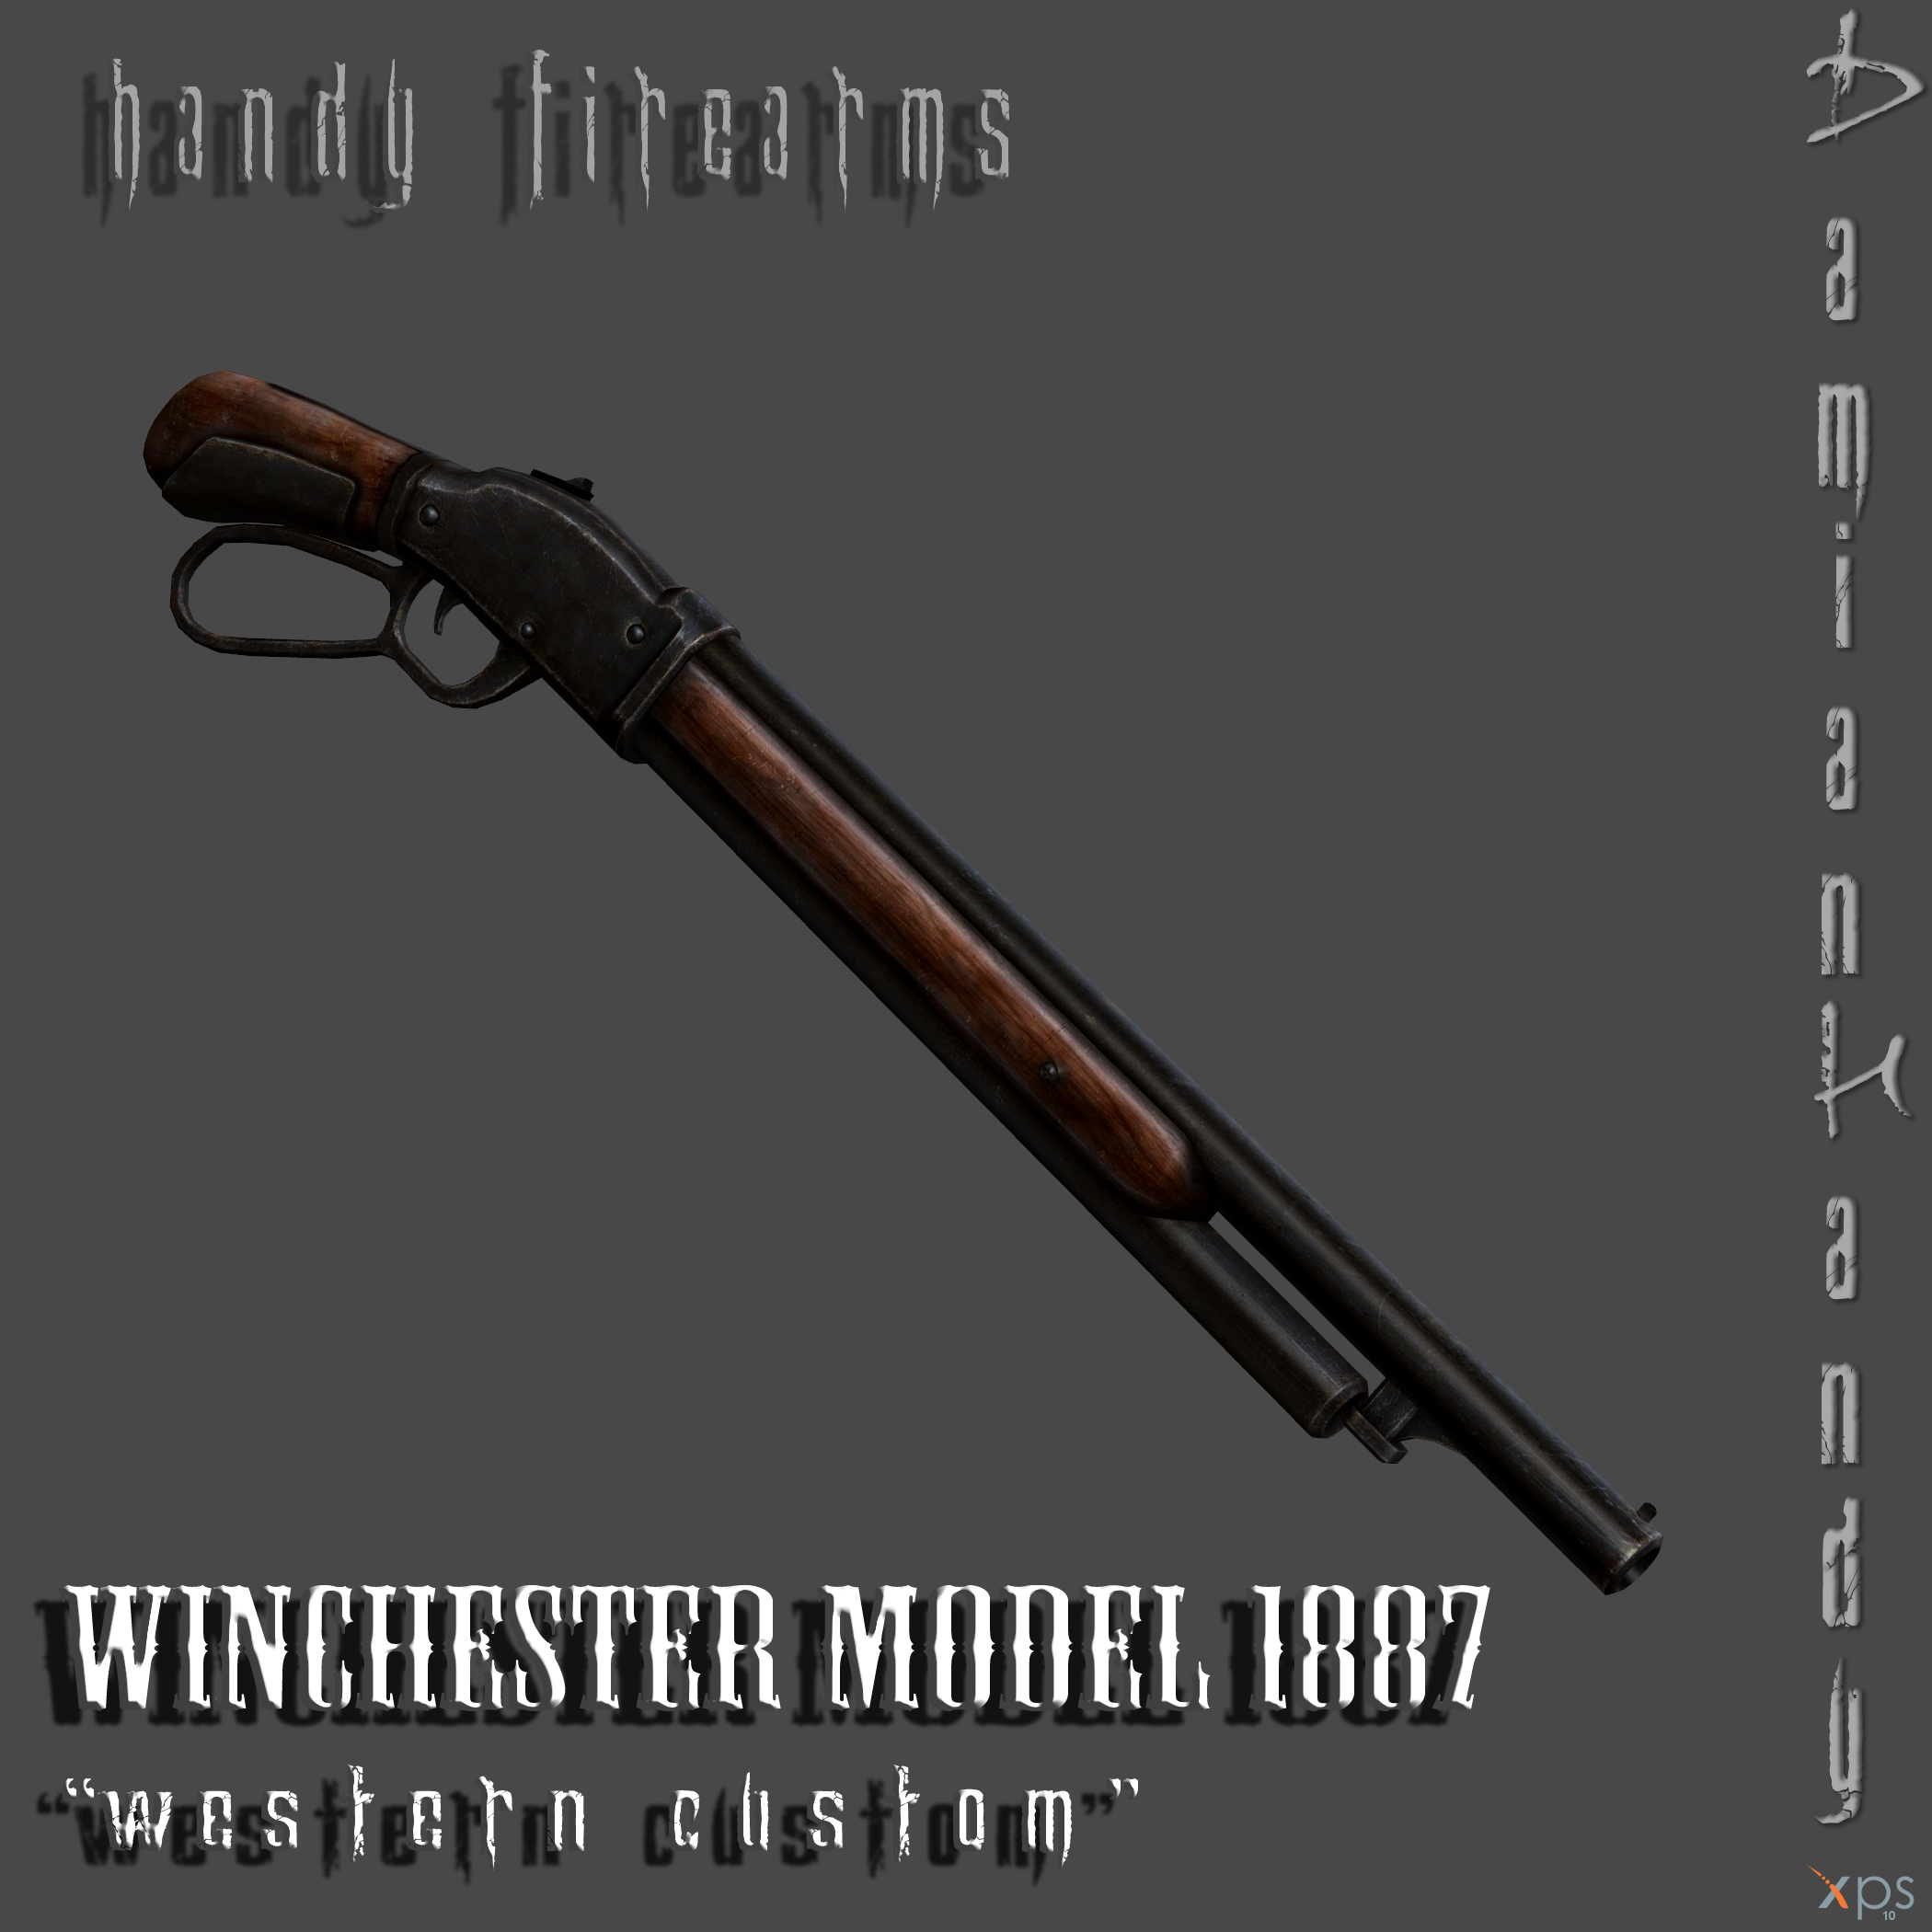 Winchester Model 1887 'Western Custom' by DamianHandy on